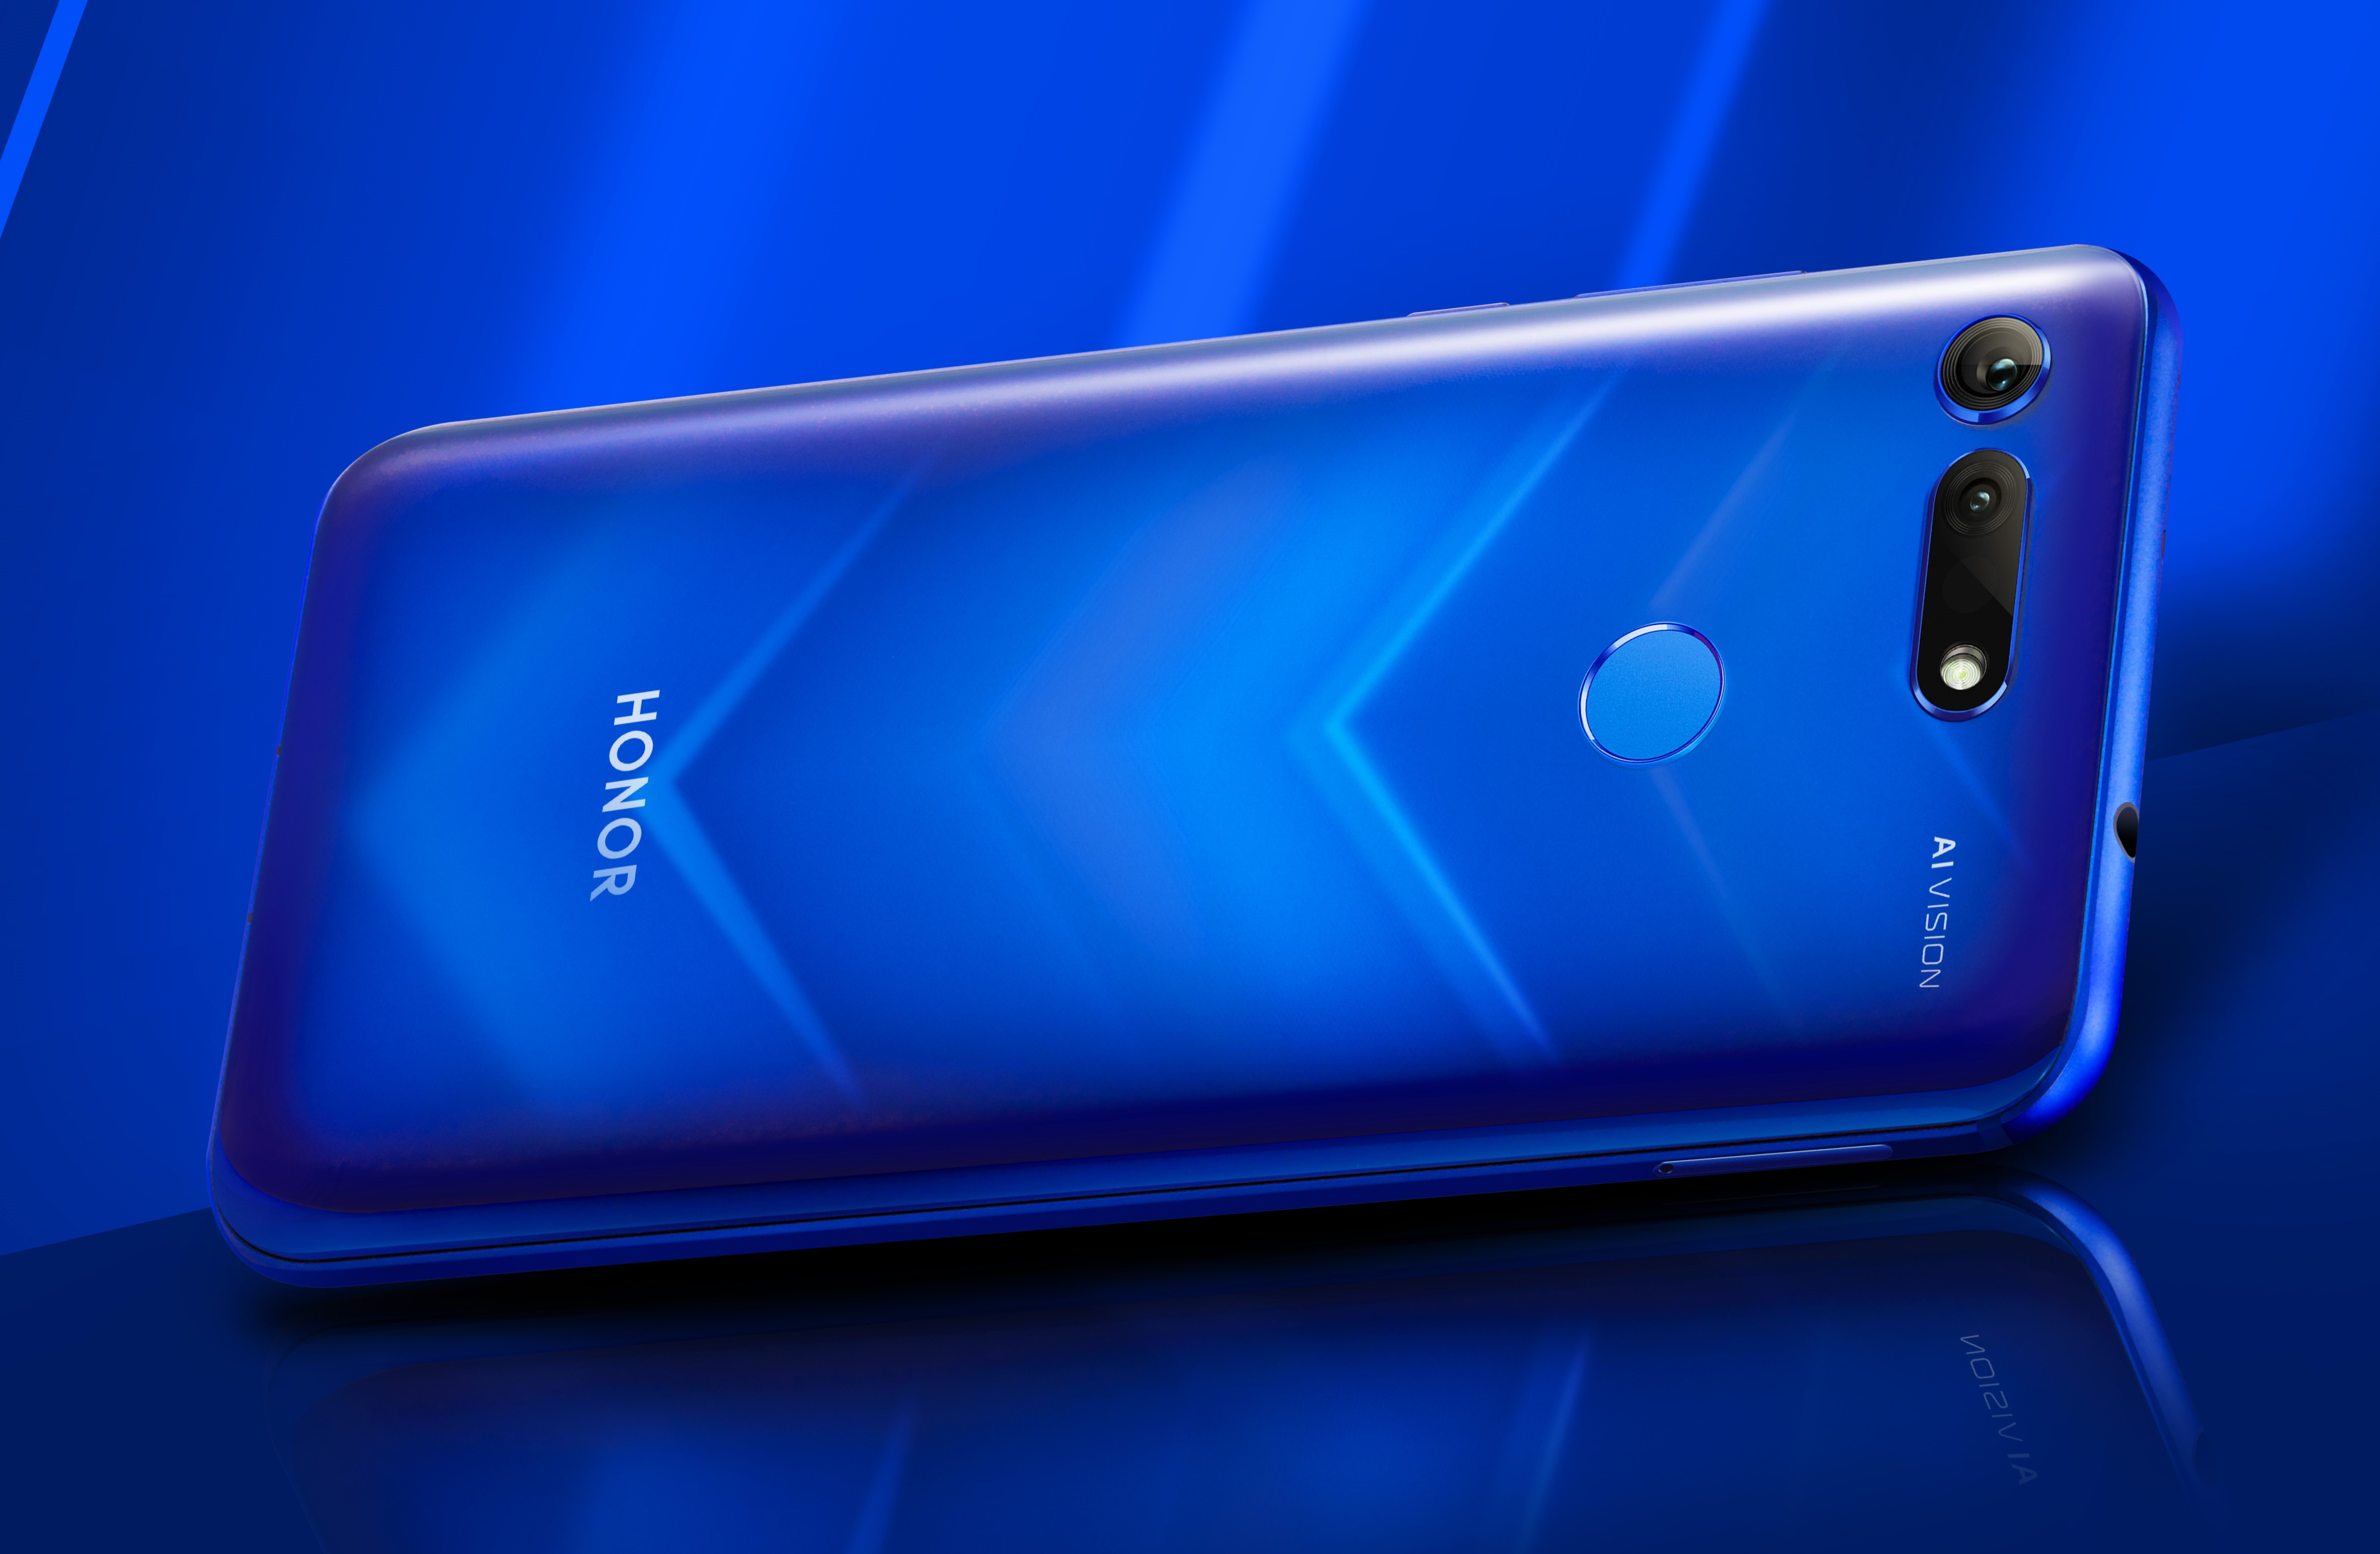 The Honor View 20 is official with a 6.4-inch 'punch-hole' display and the world's first 48MP rear camera